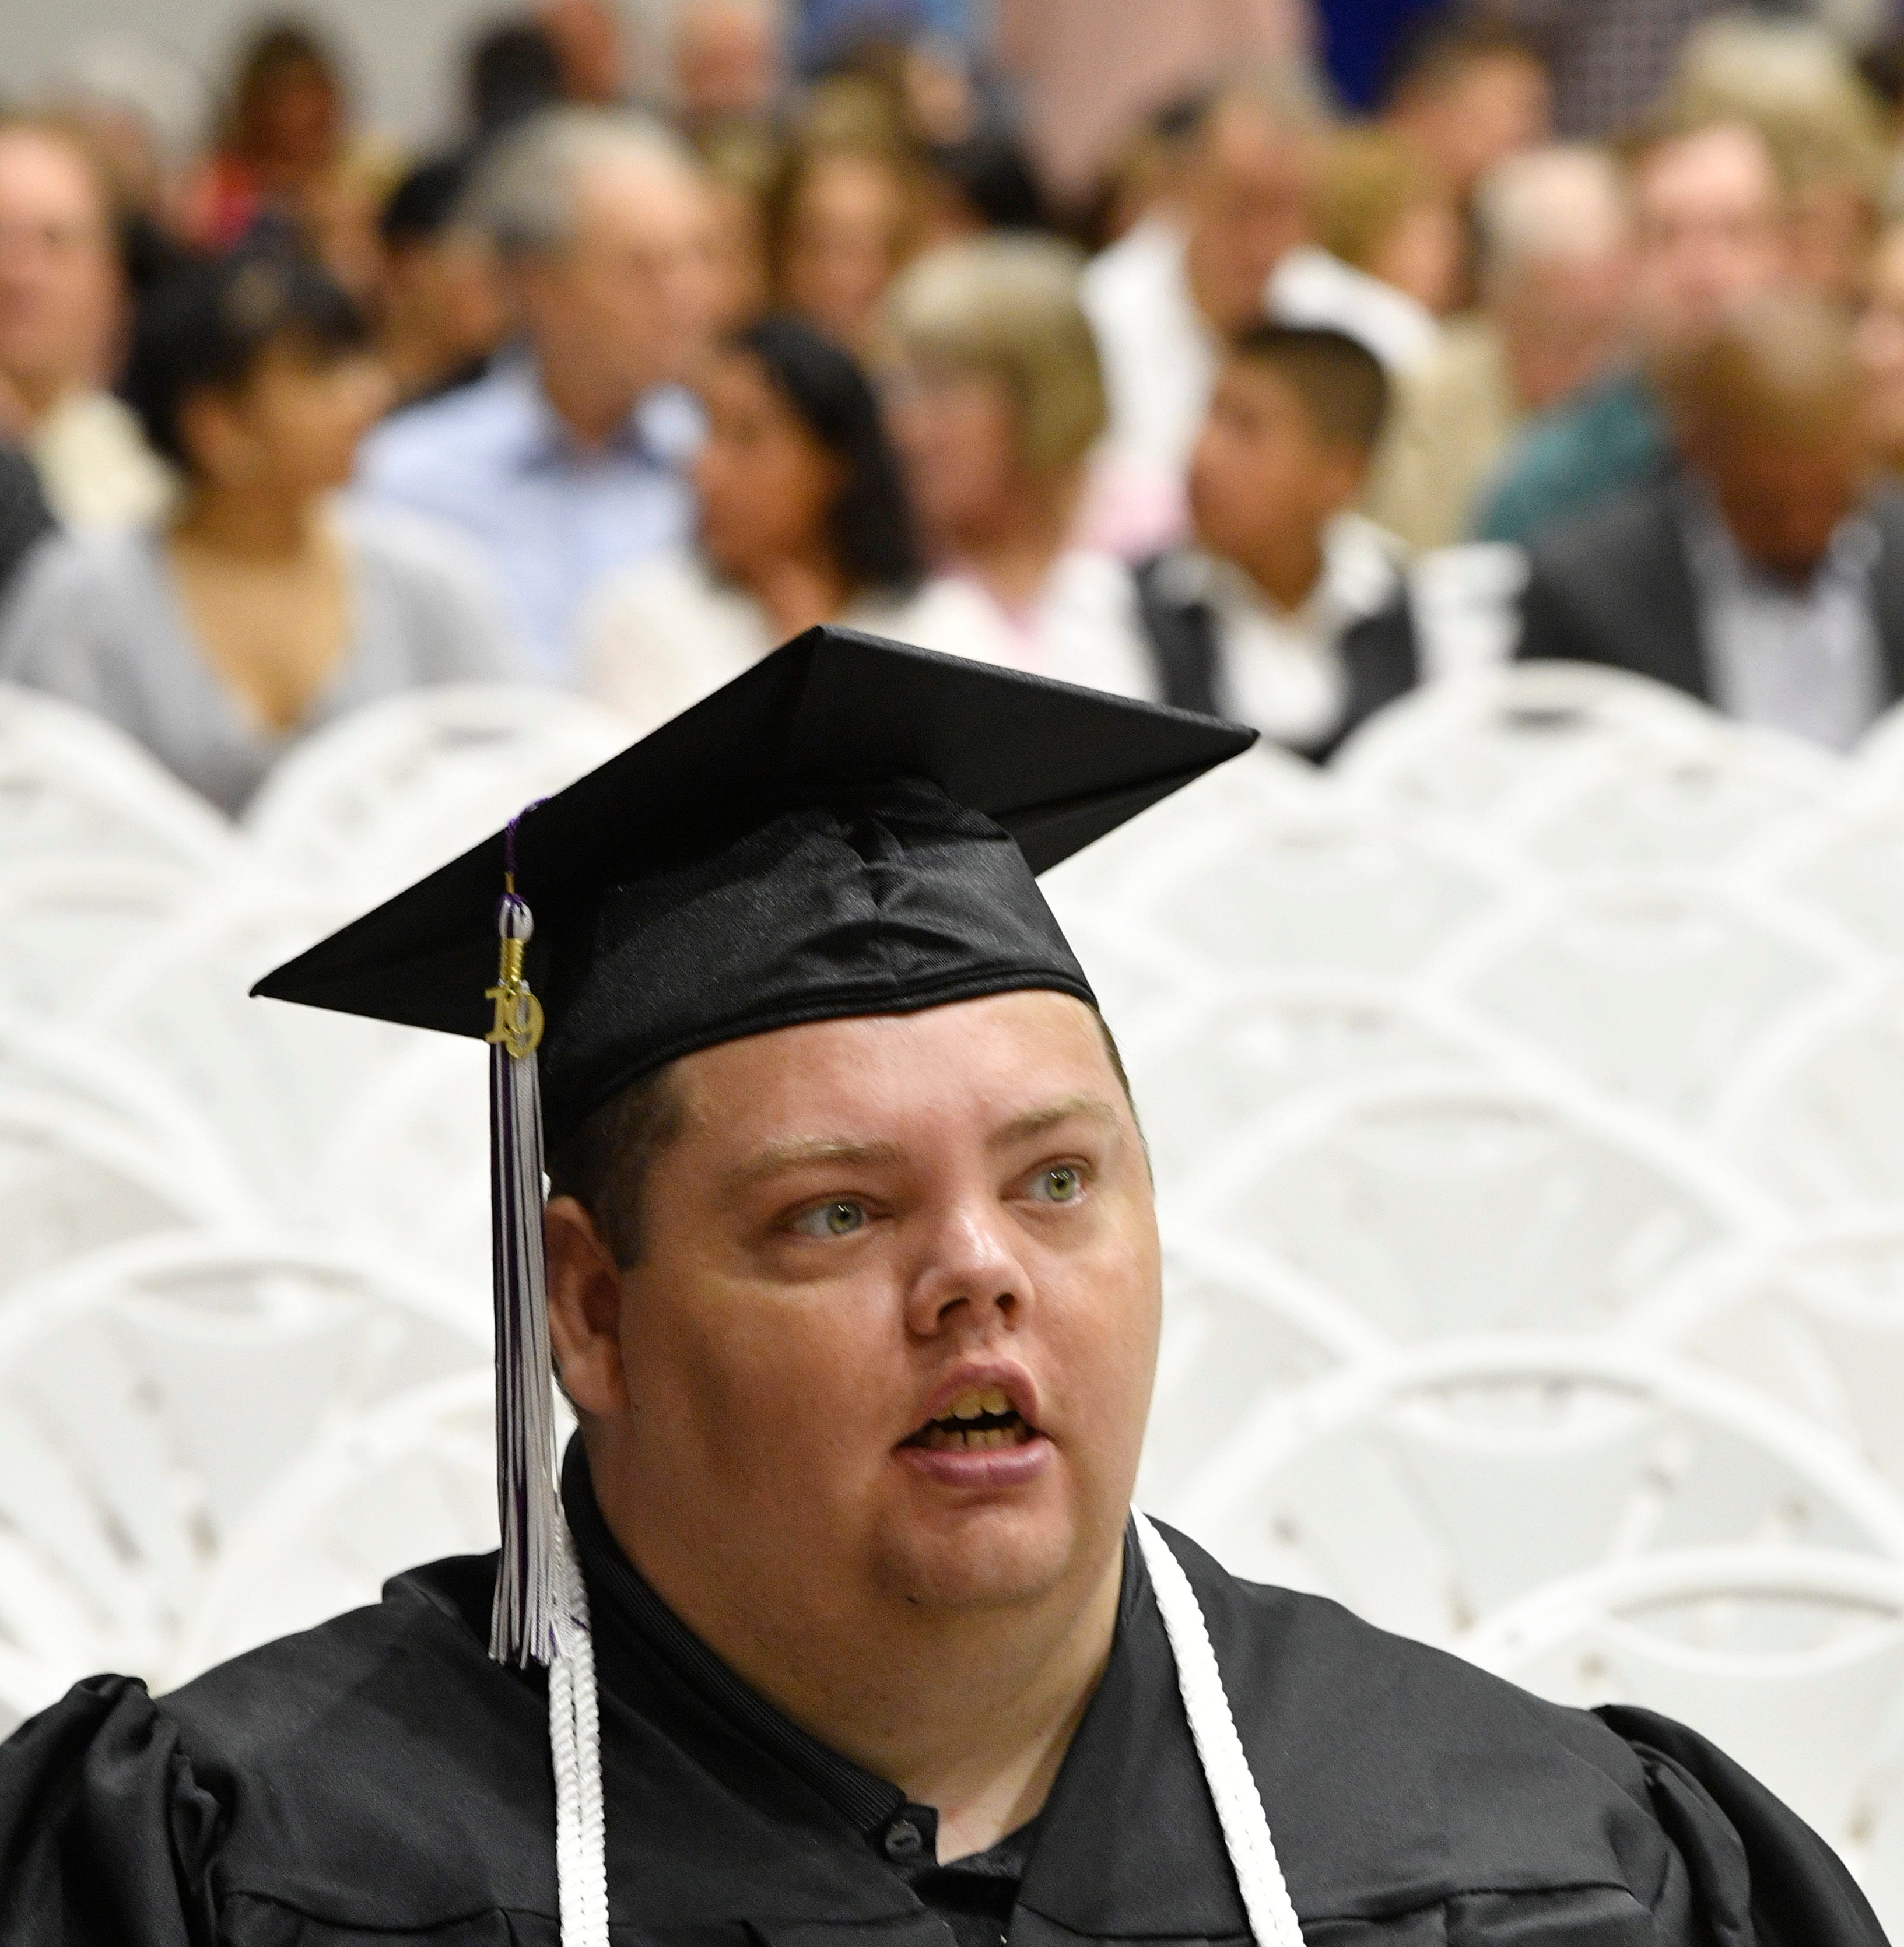 Trevecca student with autism graduates after 12 years, a special perseverance award in his honor